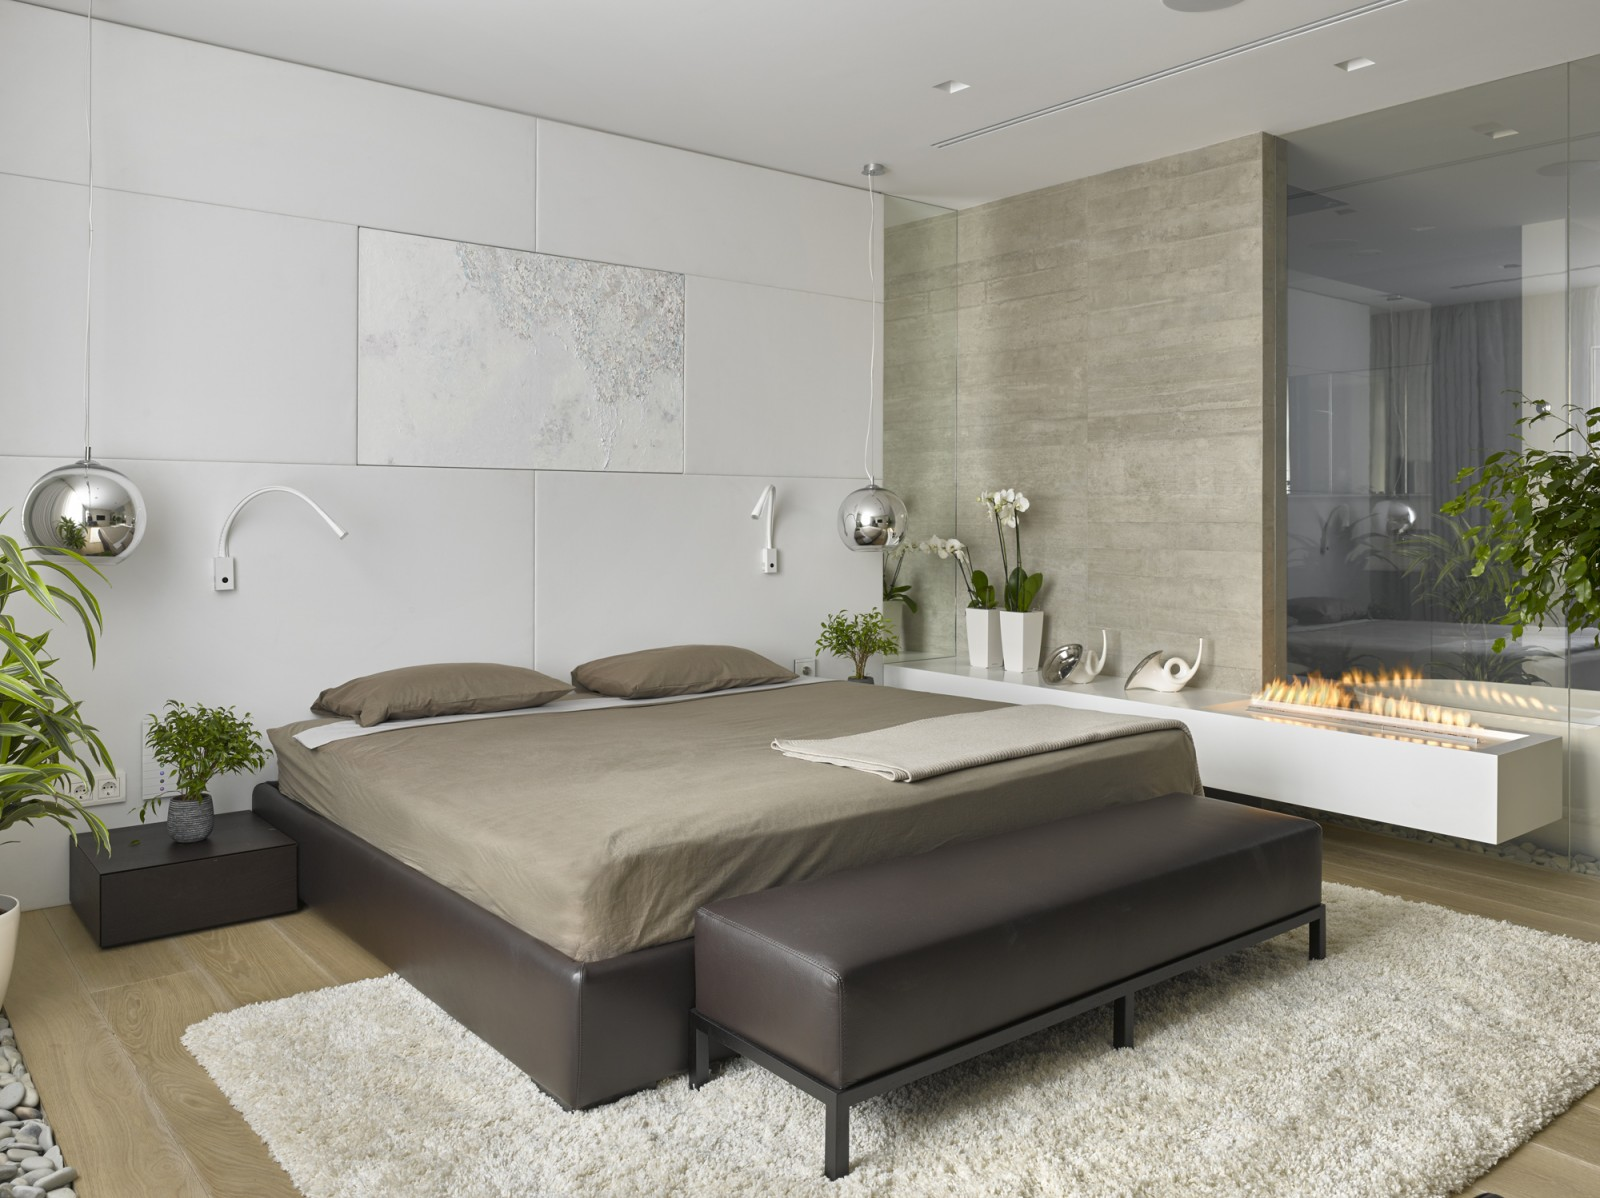 Merveilleux Elegant Modern Bedroom Idea From Alexandra Fedorova